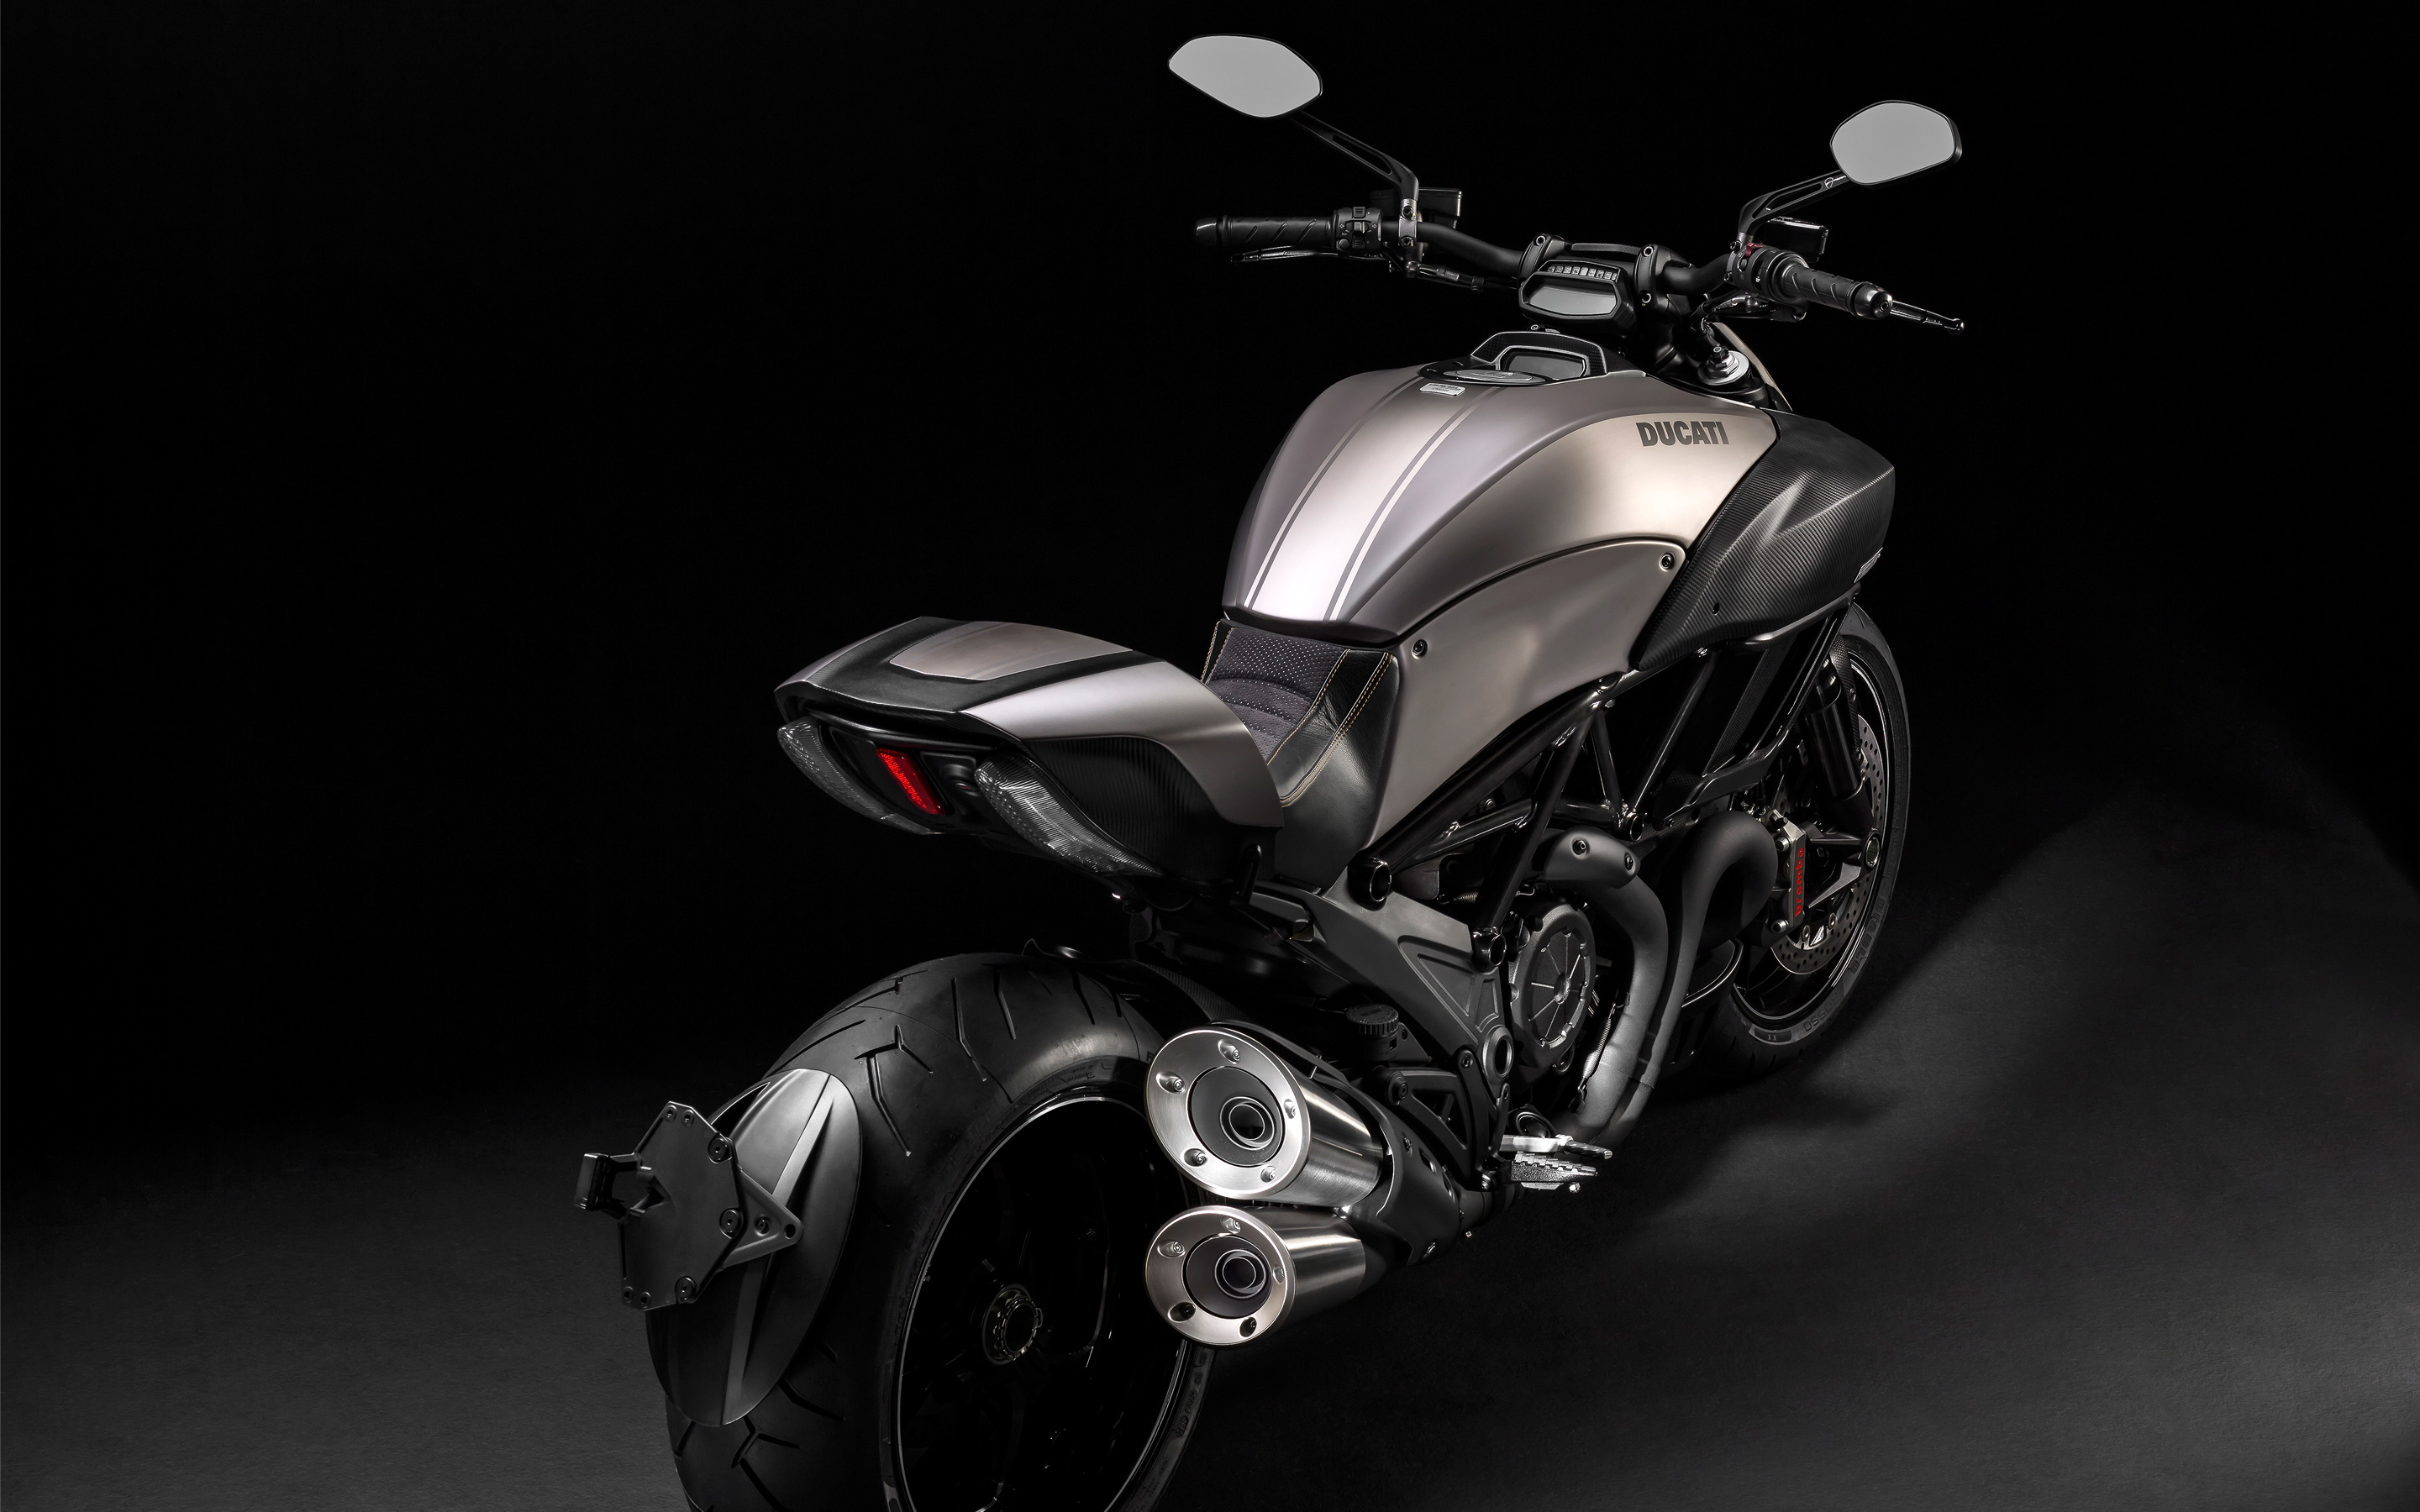 Marvelous 2015 Ducati Diavel Titanium